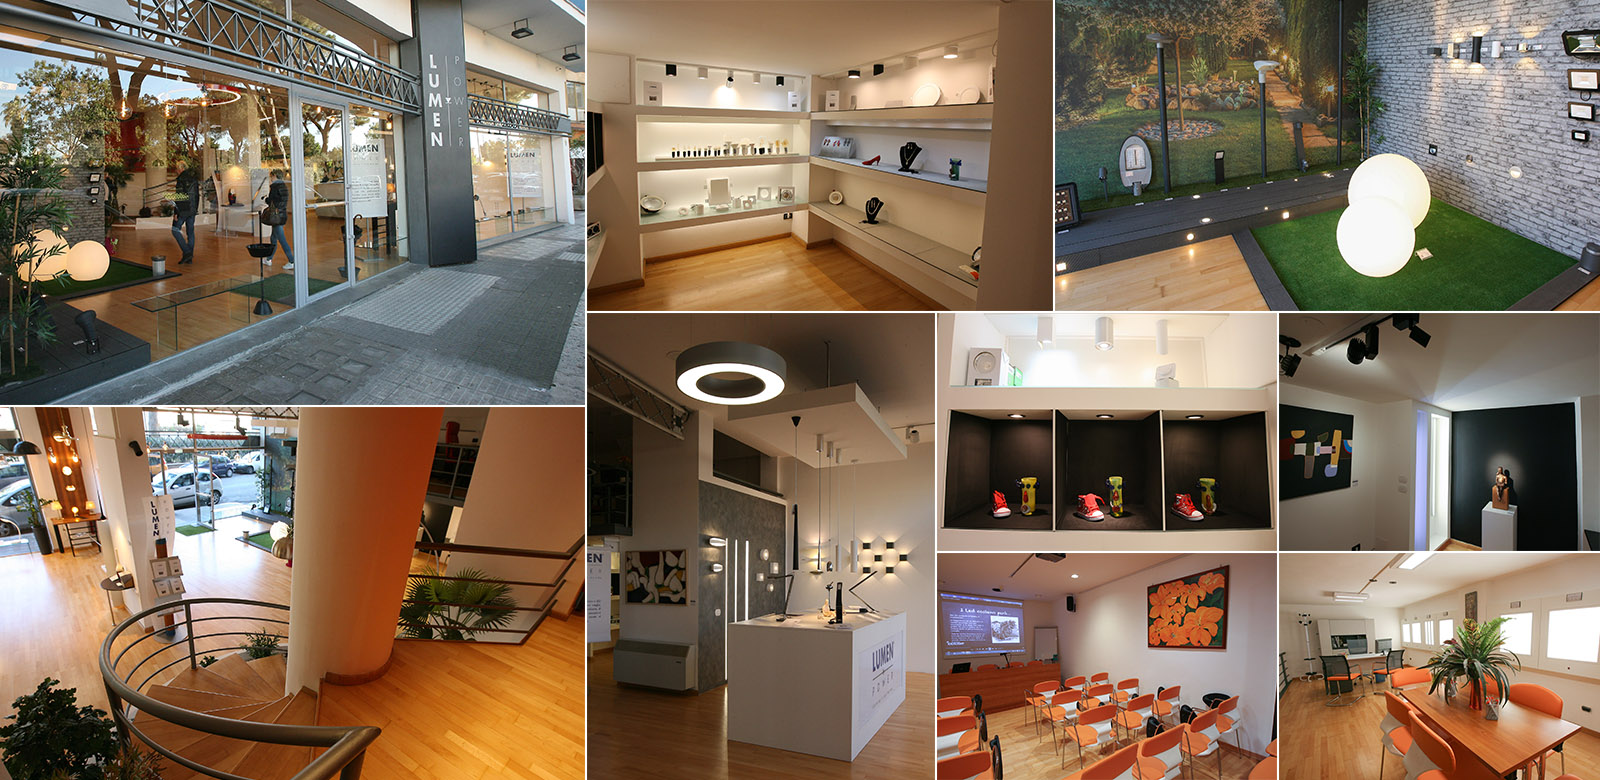 Sinergyca showroom presents luminaires from OMS portfolio